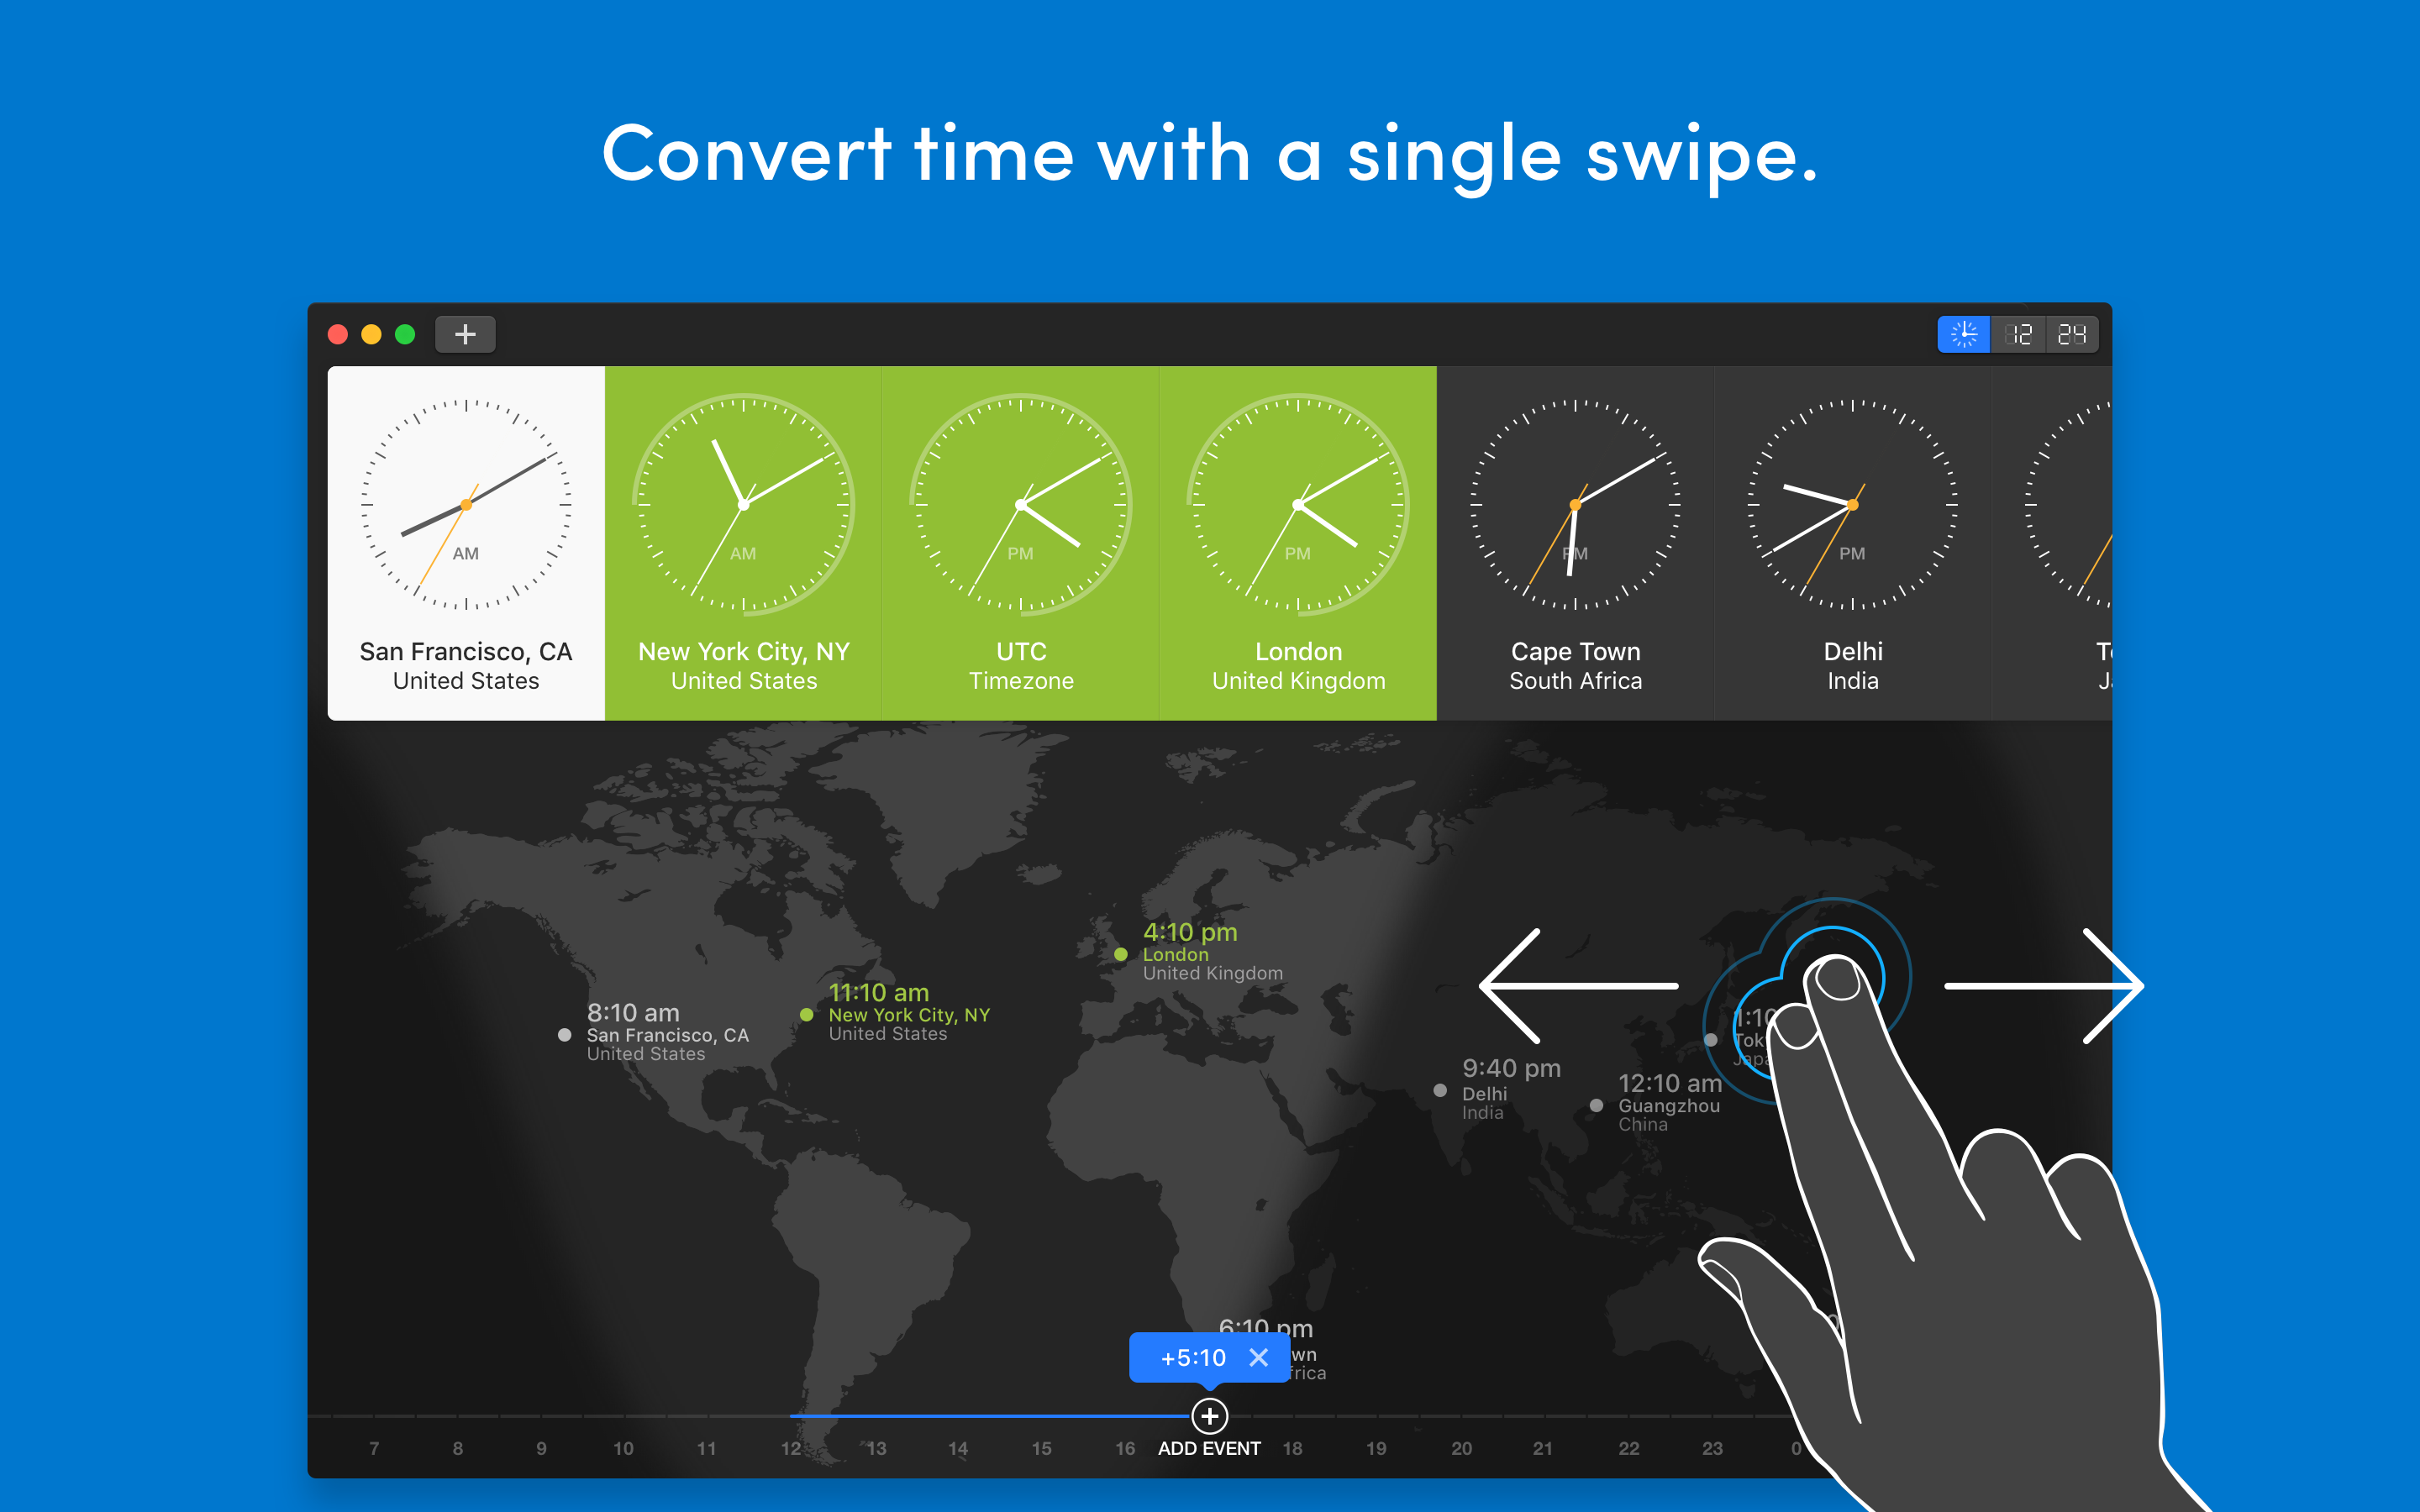 Convert time with a single swipe.